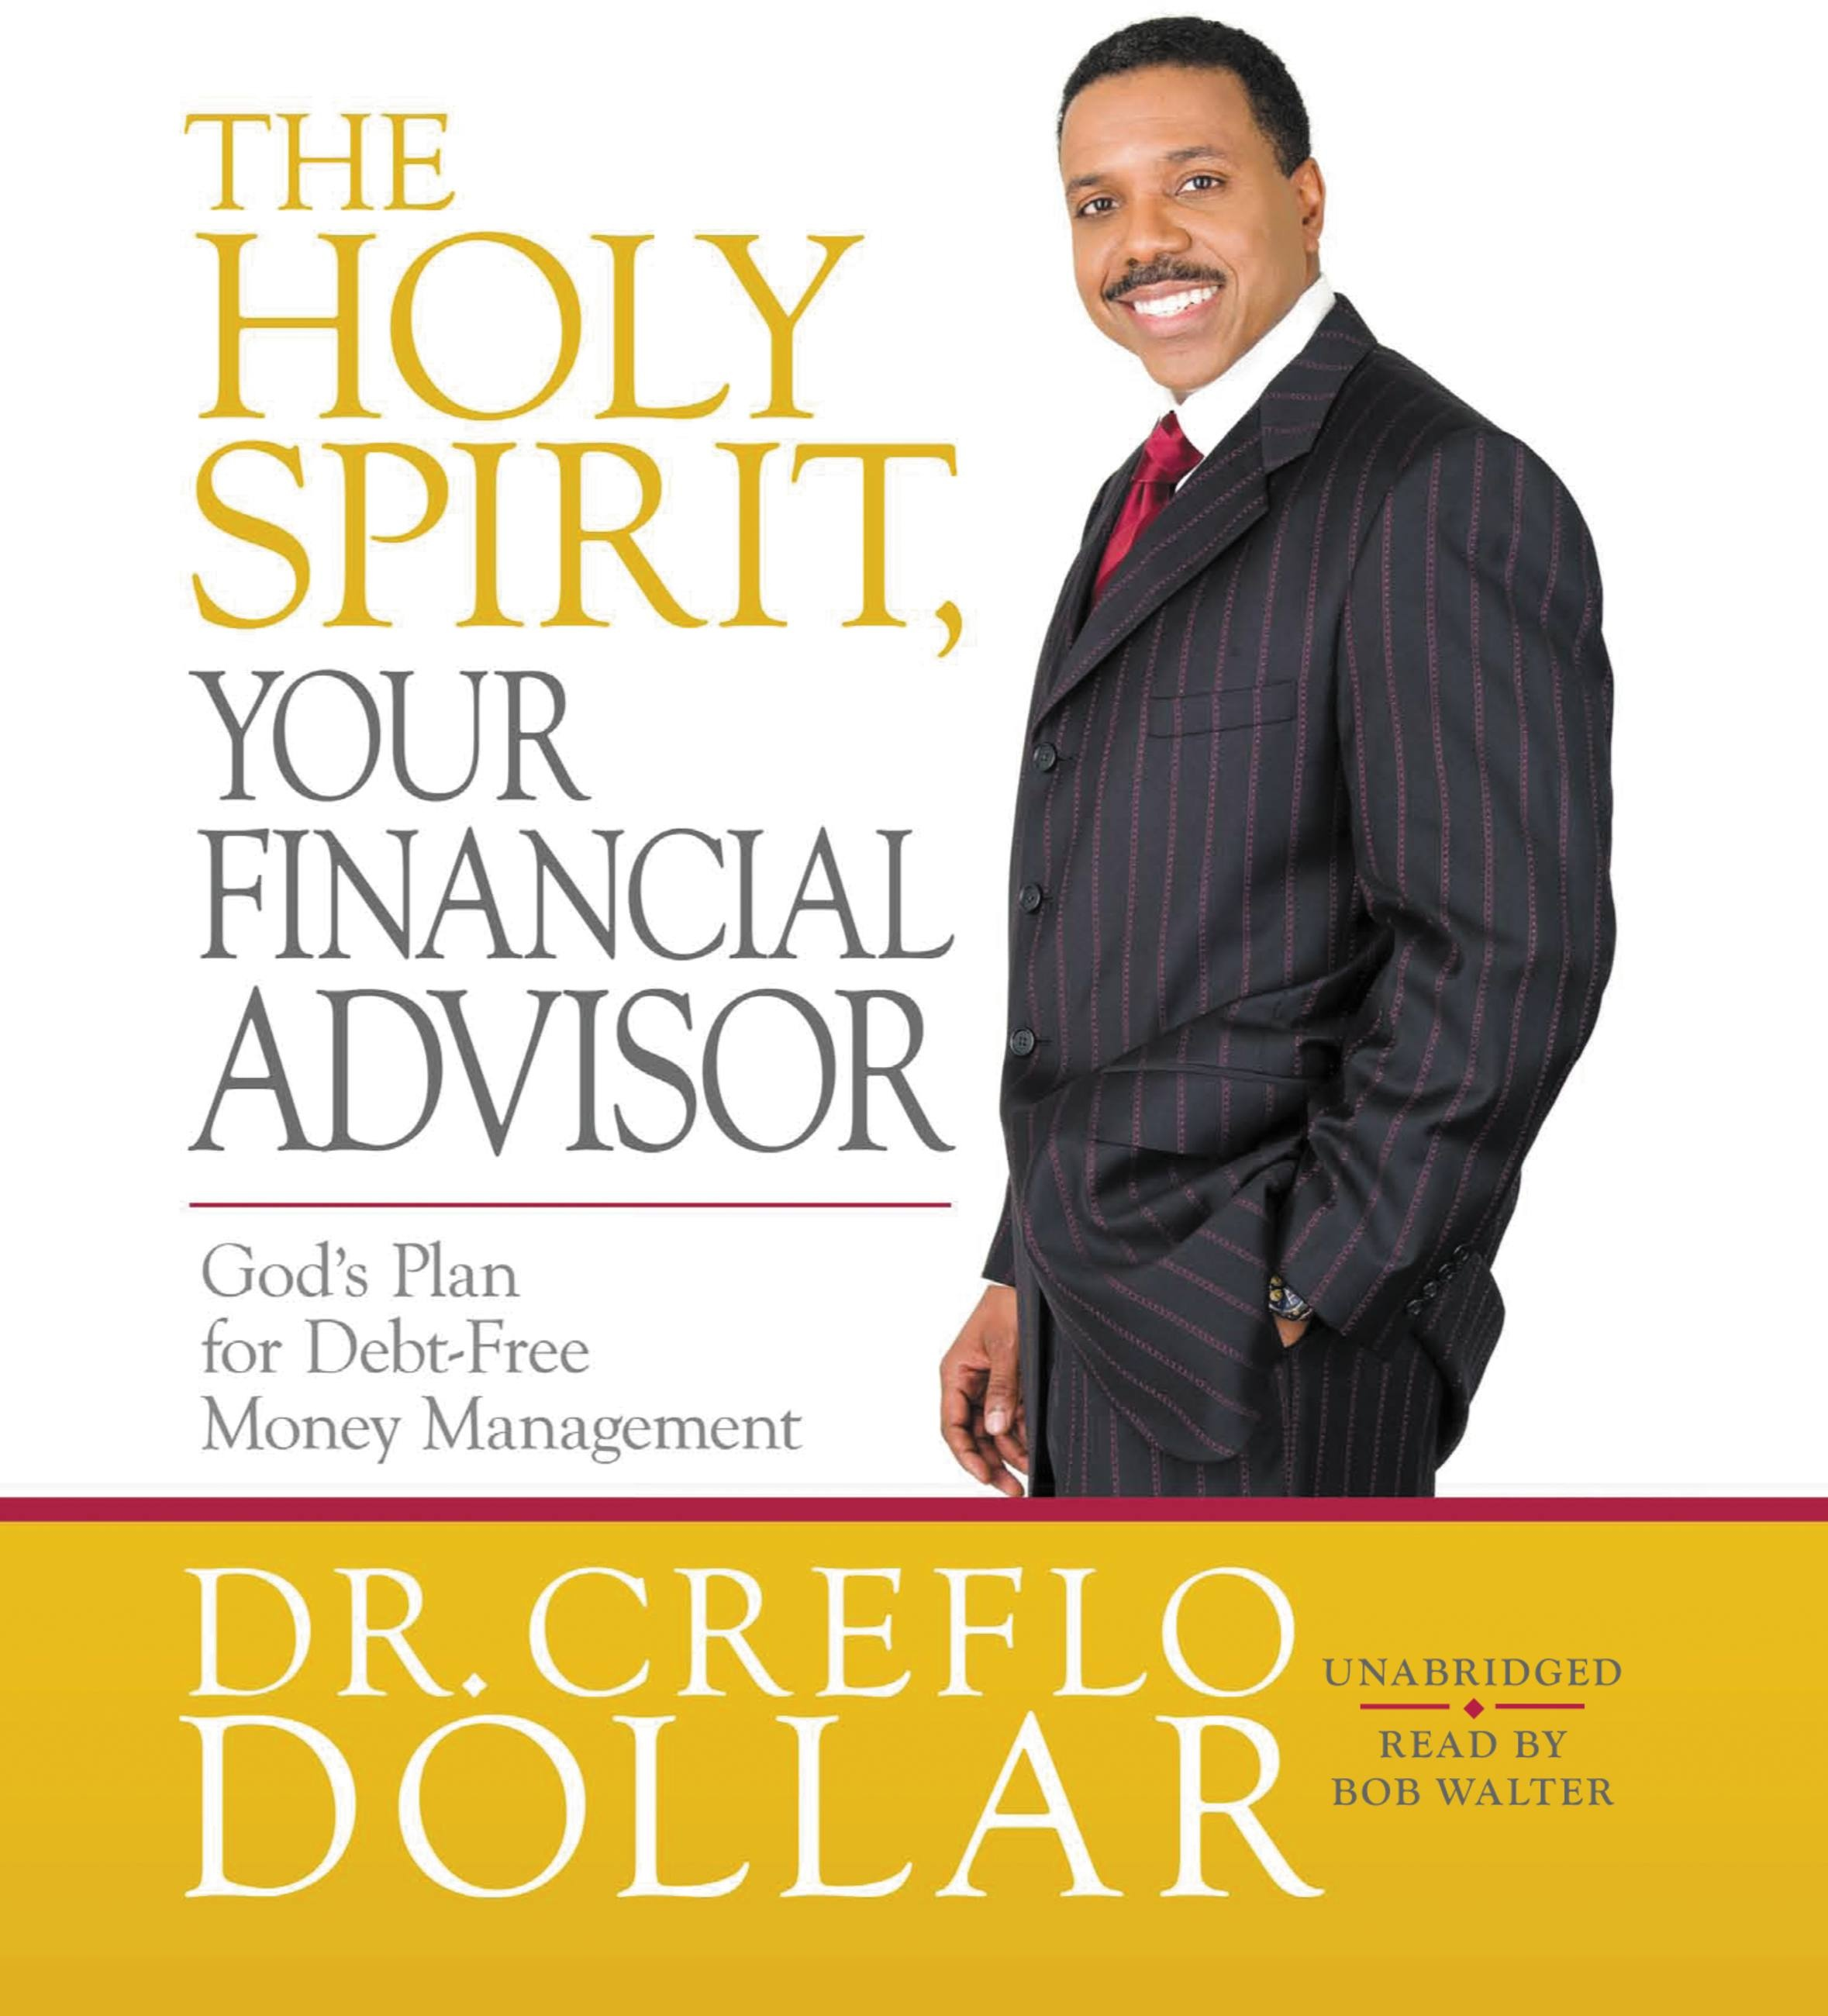 The Holy Spirit, Your Financial Advisor by Creflo Dollar | Hachette Book  Group